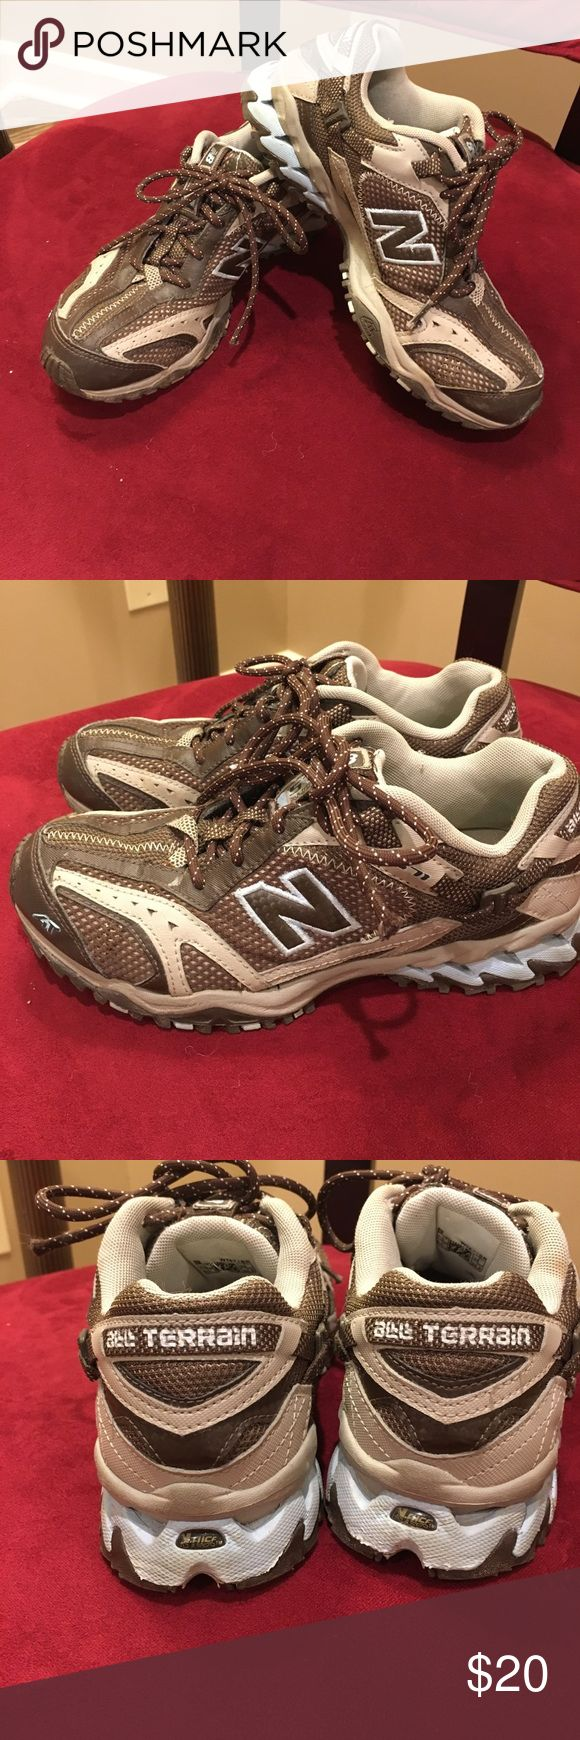 New balance all Terrain hiking trail shoes  571 All terrain new balance 571 hiking shoes. The color is beige and brown with baby blue catching. These are a size 7 1/2. Excellent used condition smoke-free clean home. These do fit true to size New Balance Shoes Sneakers